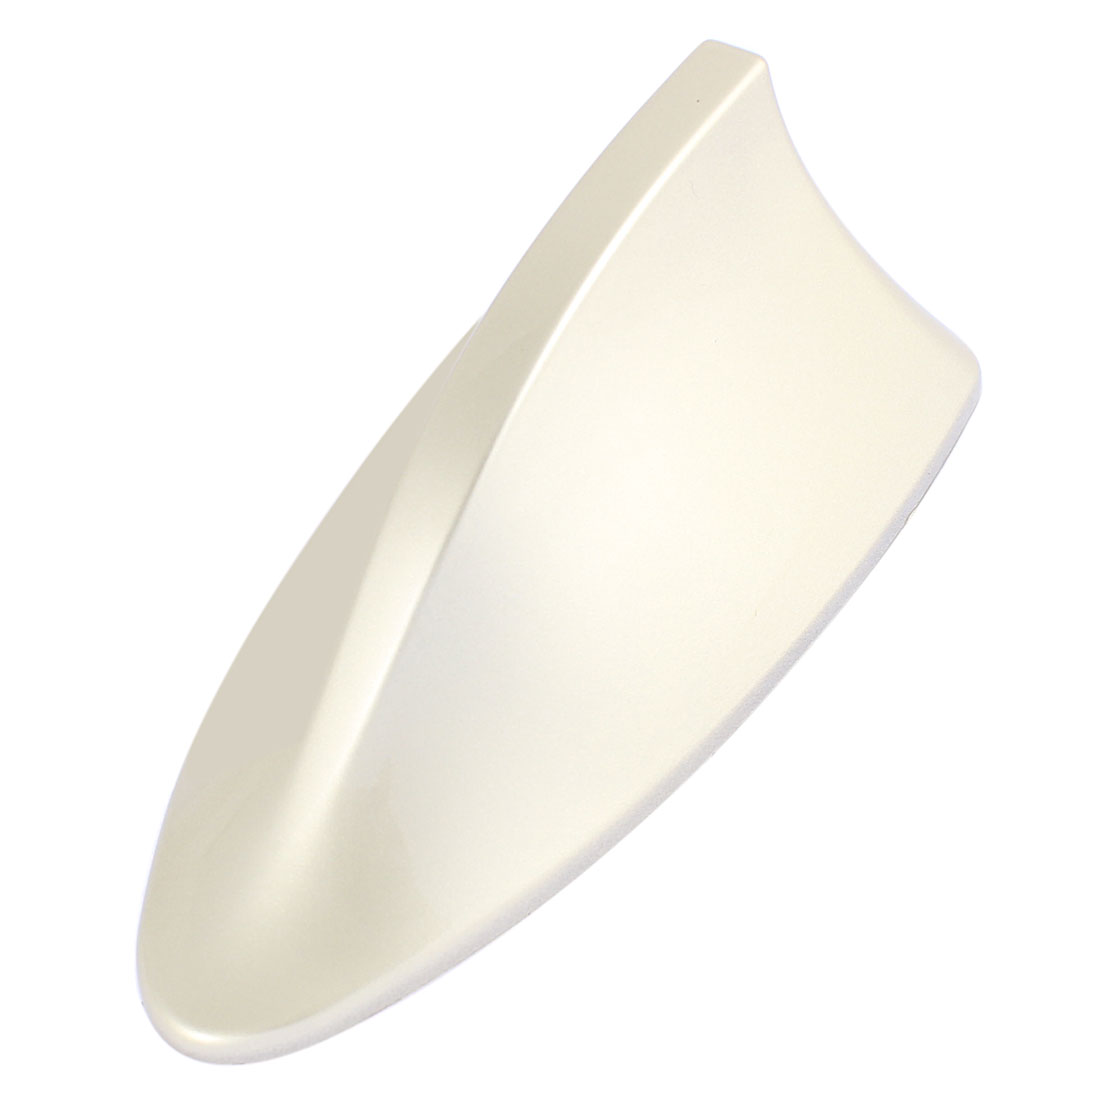 Champagne Color ABS Plastic Car Shark Fin Design Dummy Decorative Antenna